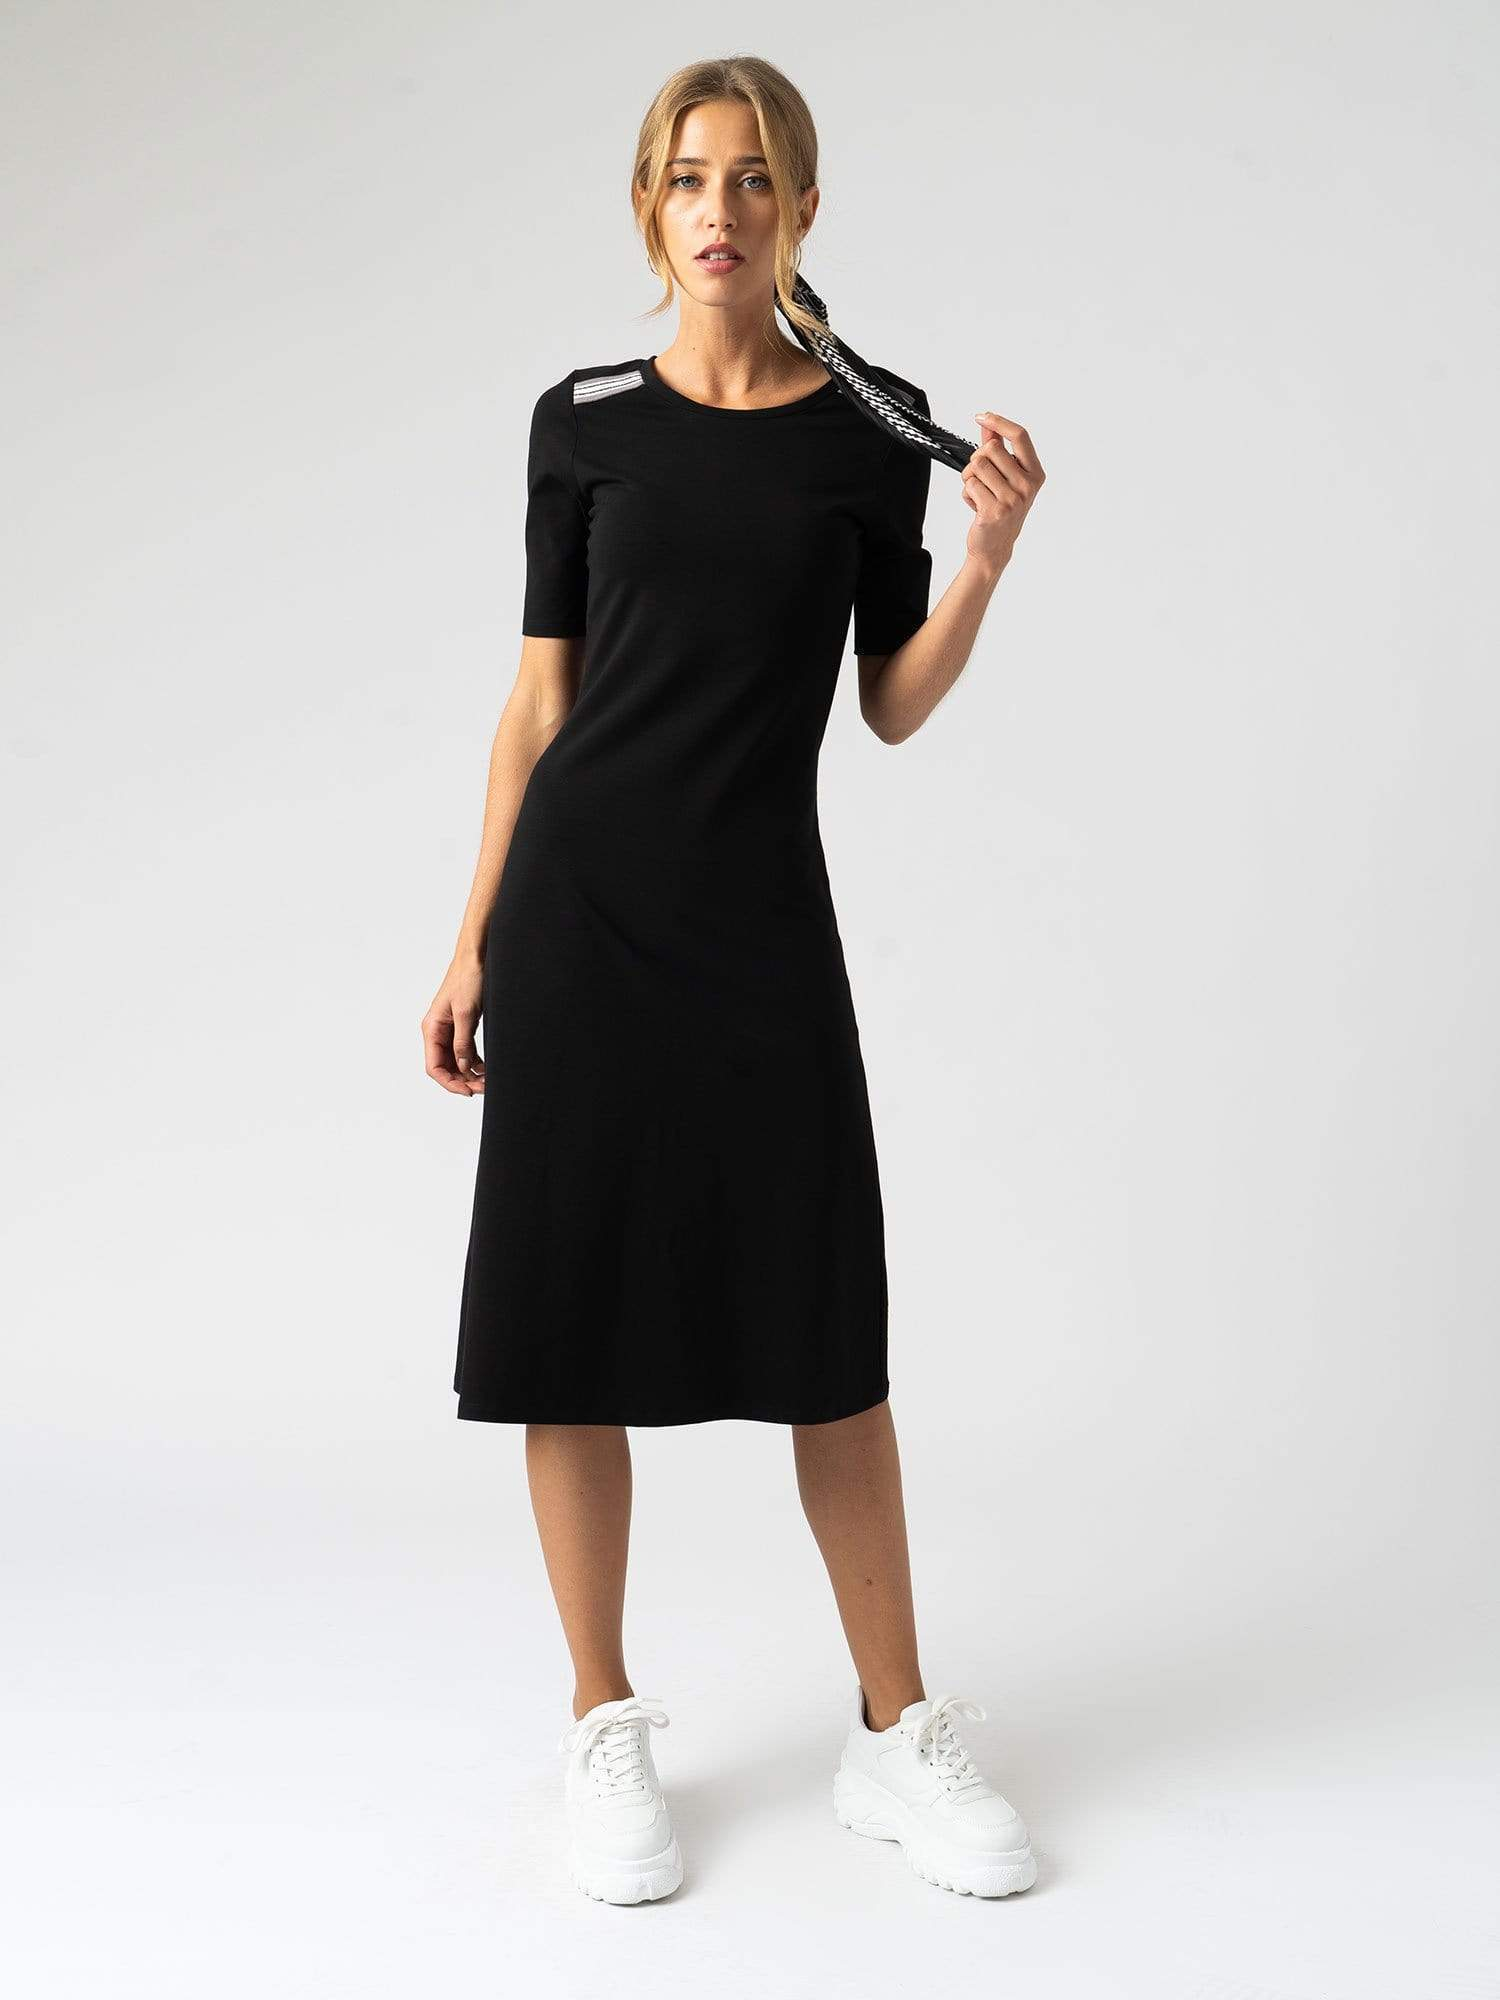 Zaggora Dress The Runway Dress